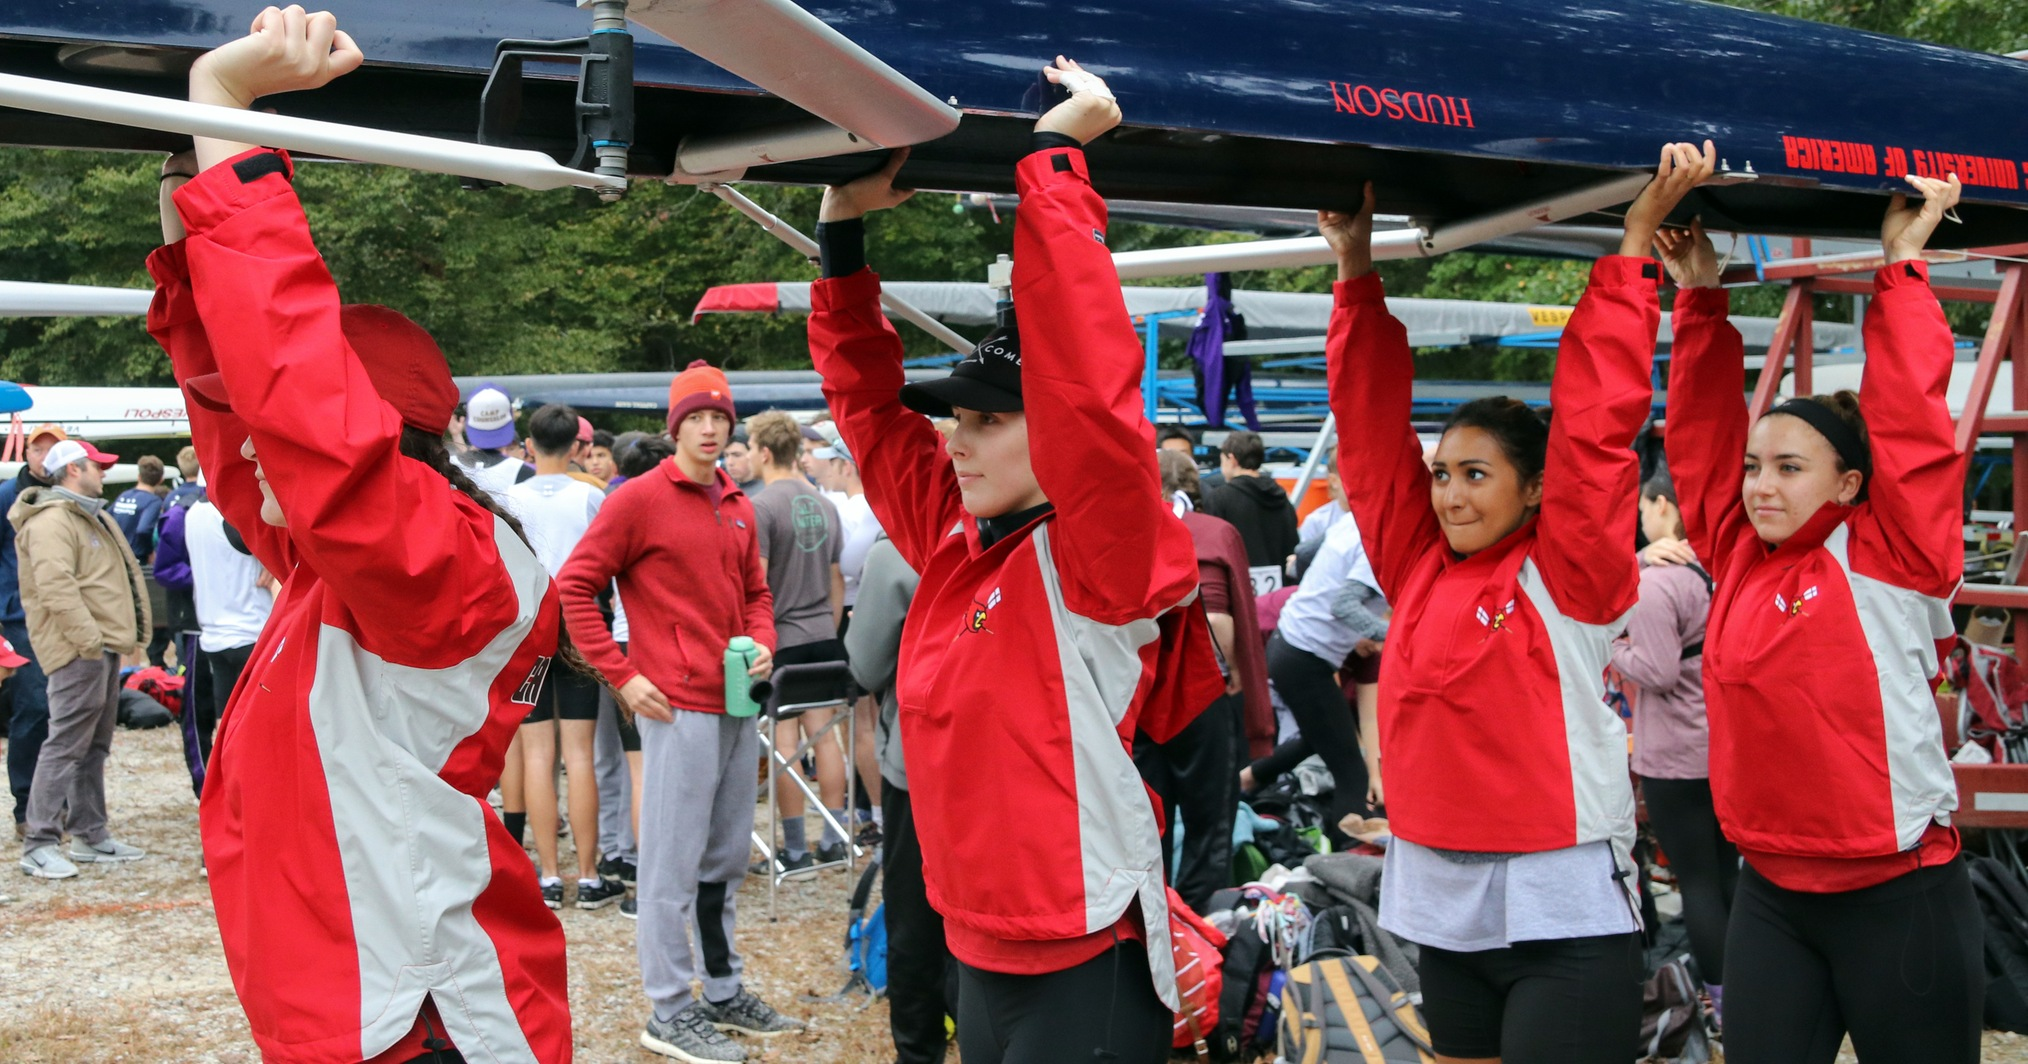 High Winds Cancel Saturday's Rowing Regatta at St. Mary's